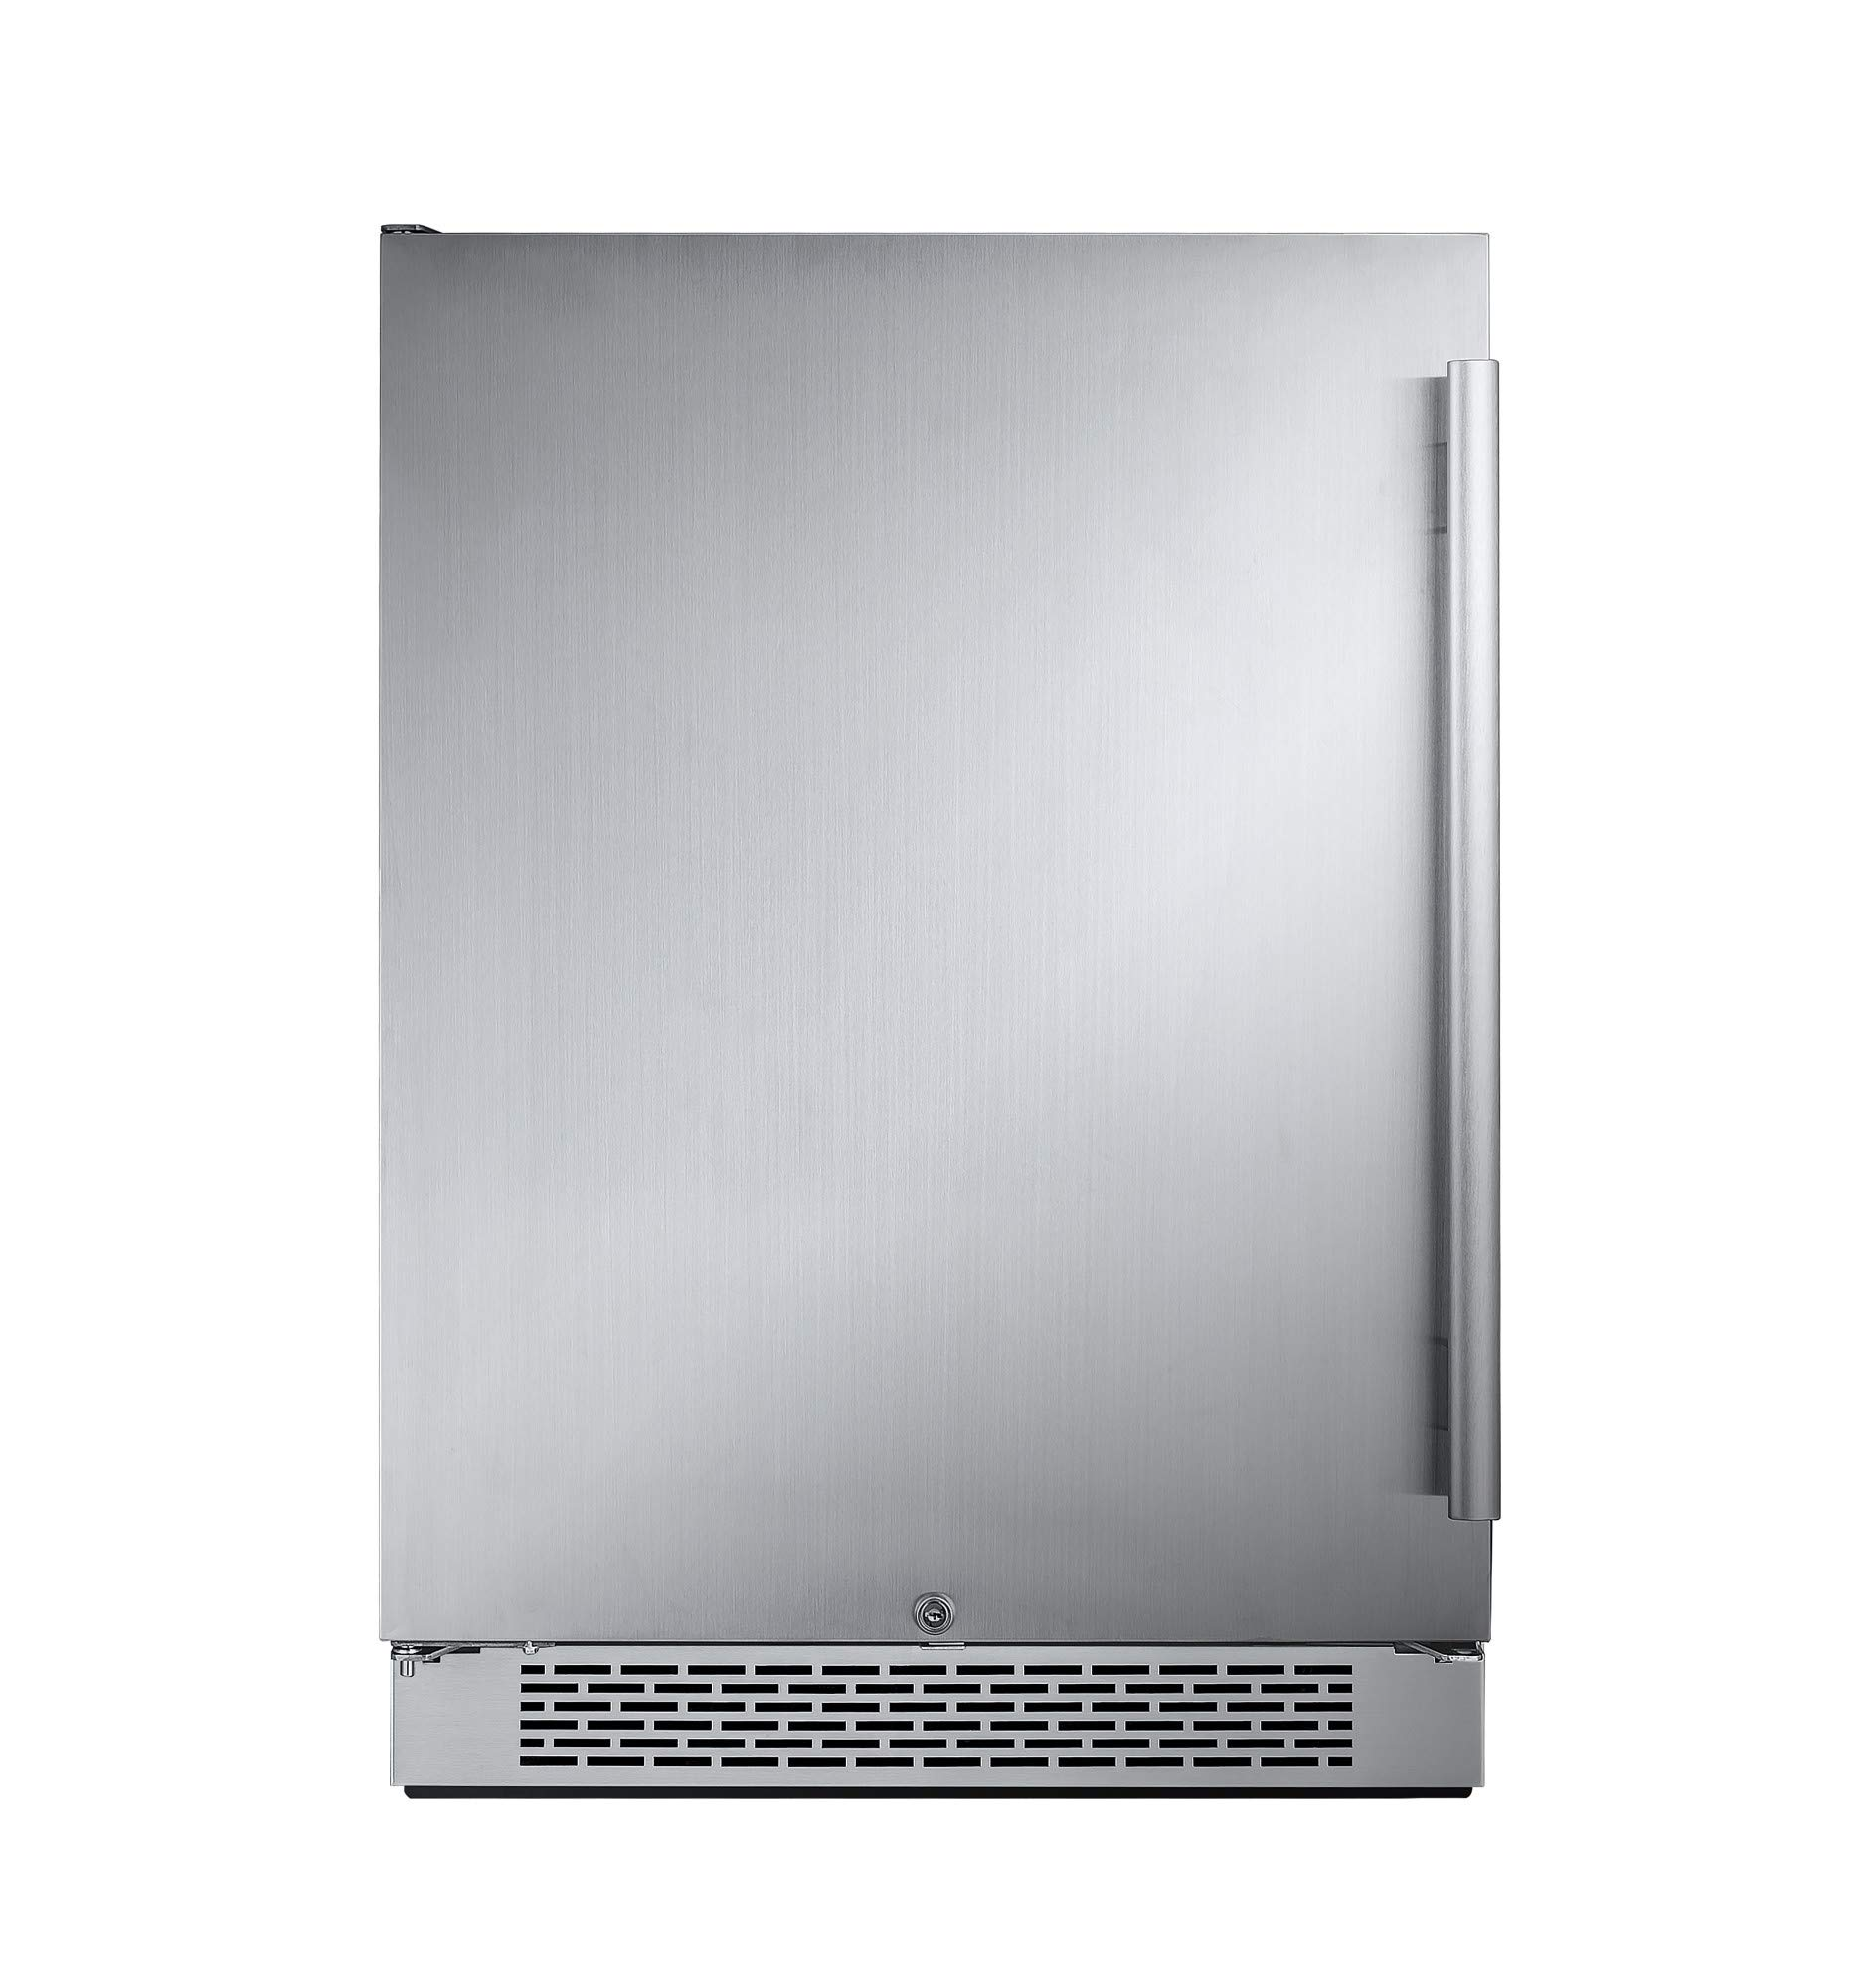 Avallon AFR241SSLH 5.5 Cu Ft 24'' Built-in Refrigerator - Left Hinge by Avallon